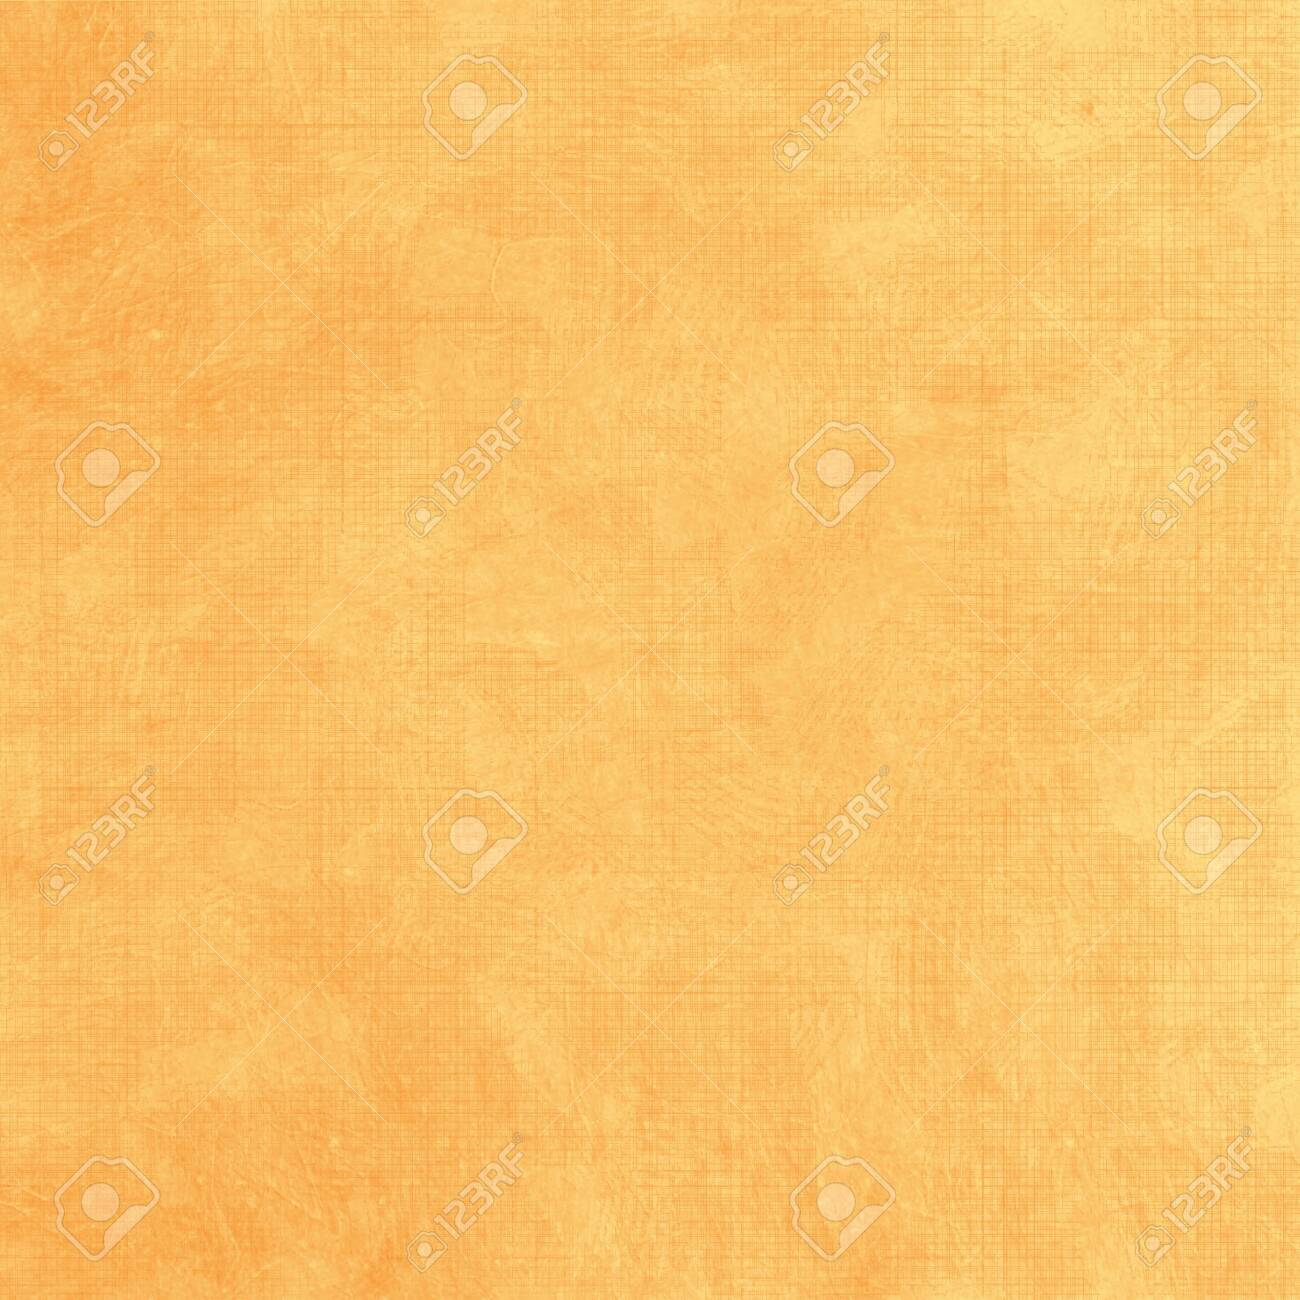 yellow canvas paper background texture vintage - 132056958